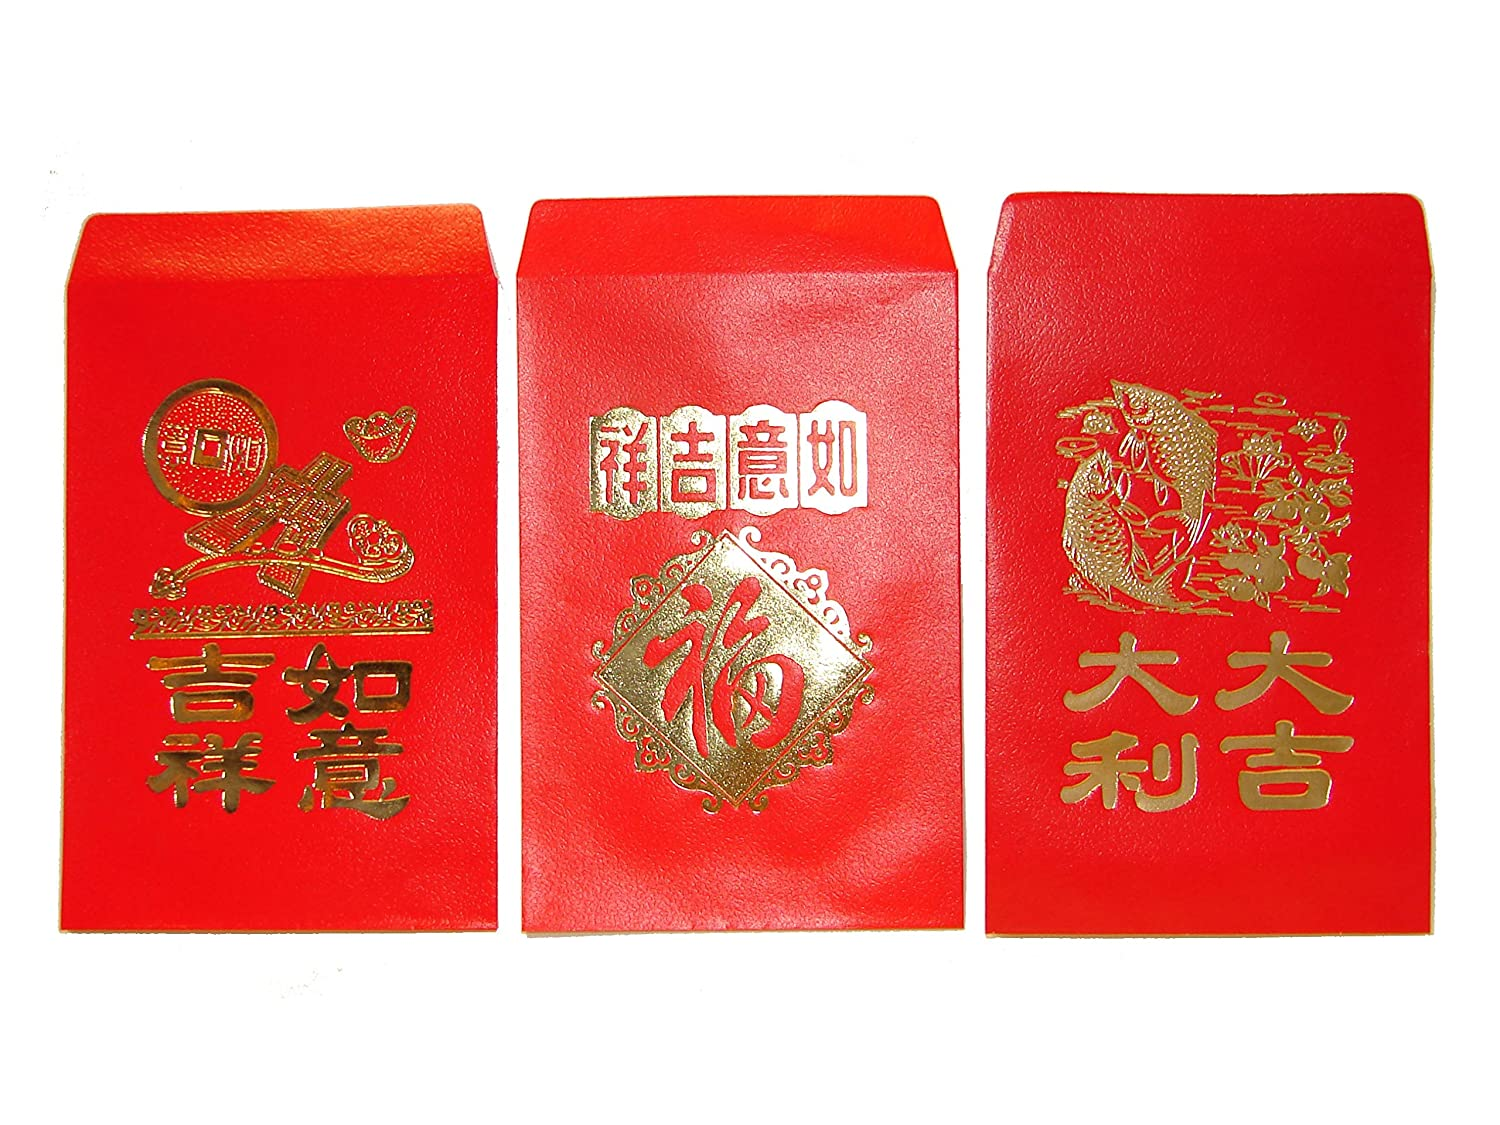 Amazon.com : Chinese Red Envelopes, pack of 50 in 3 designs ...